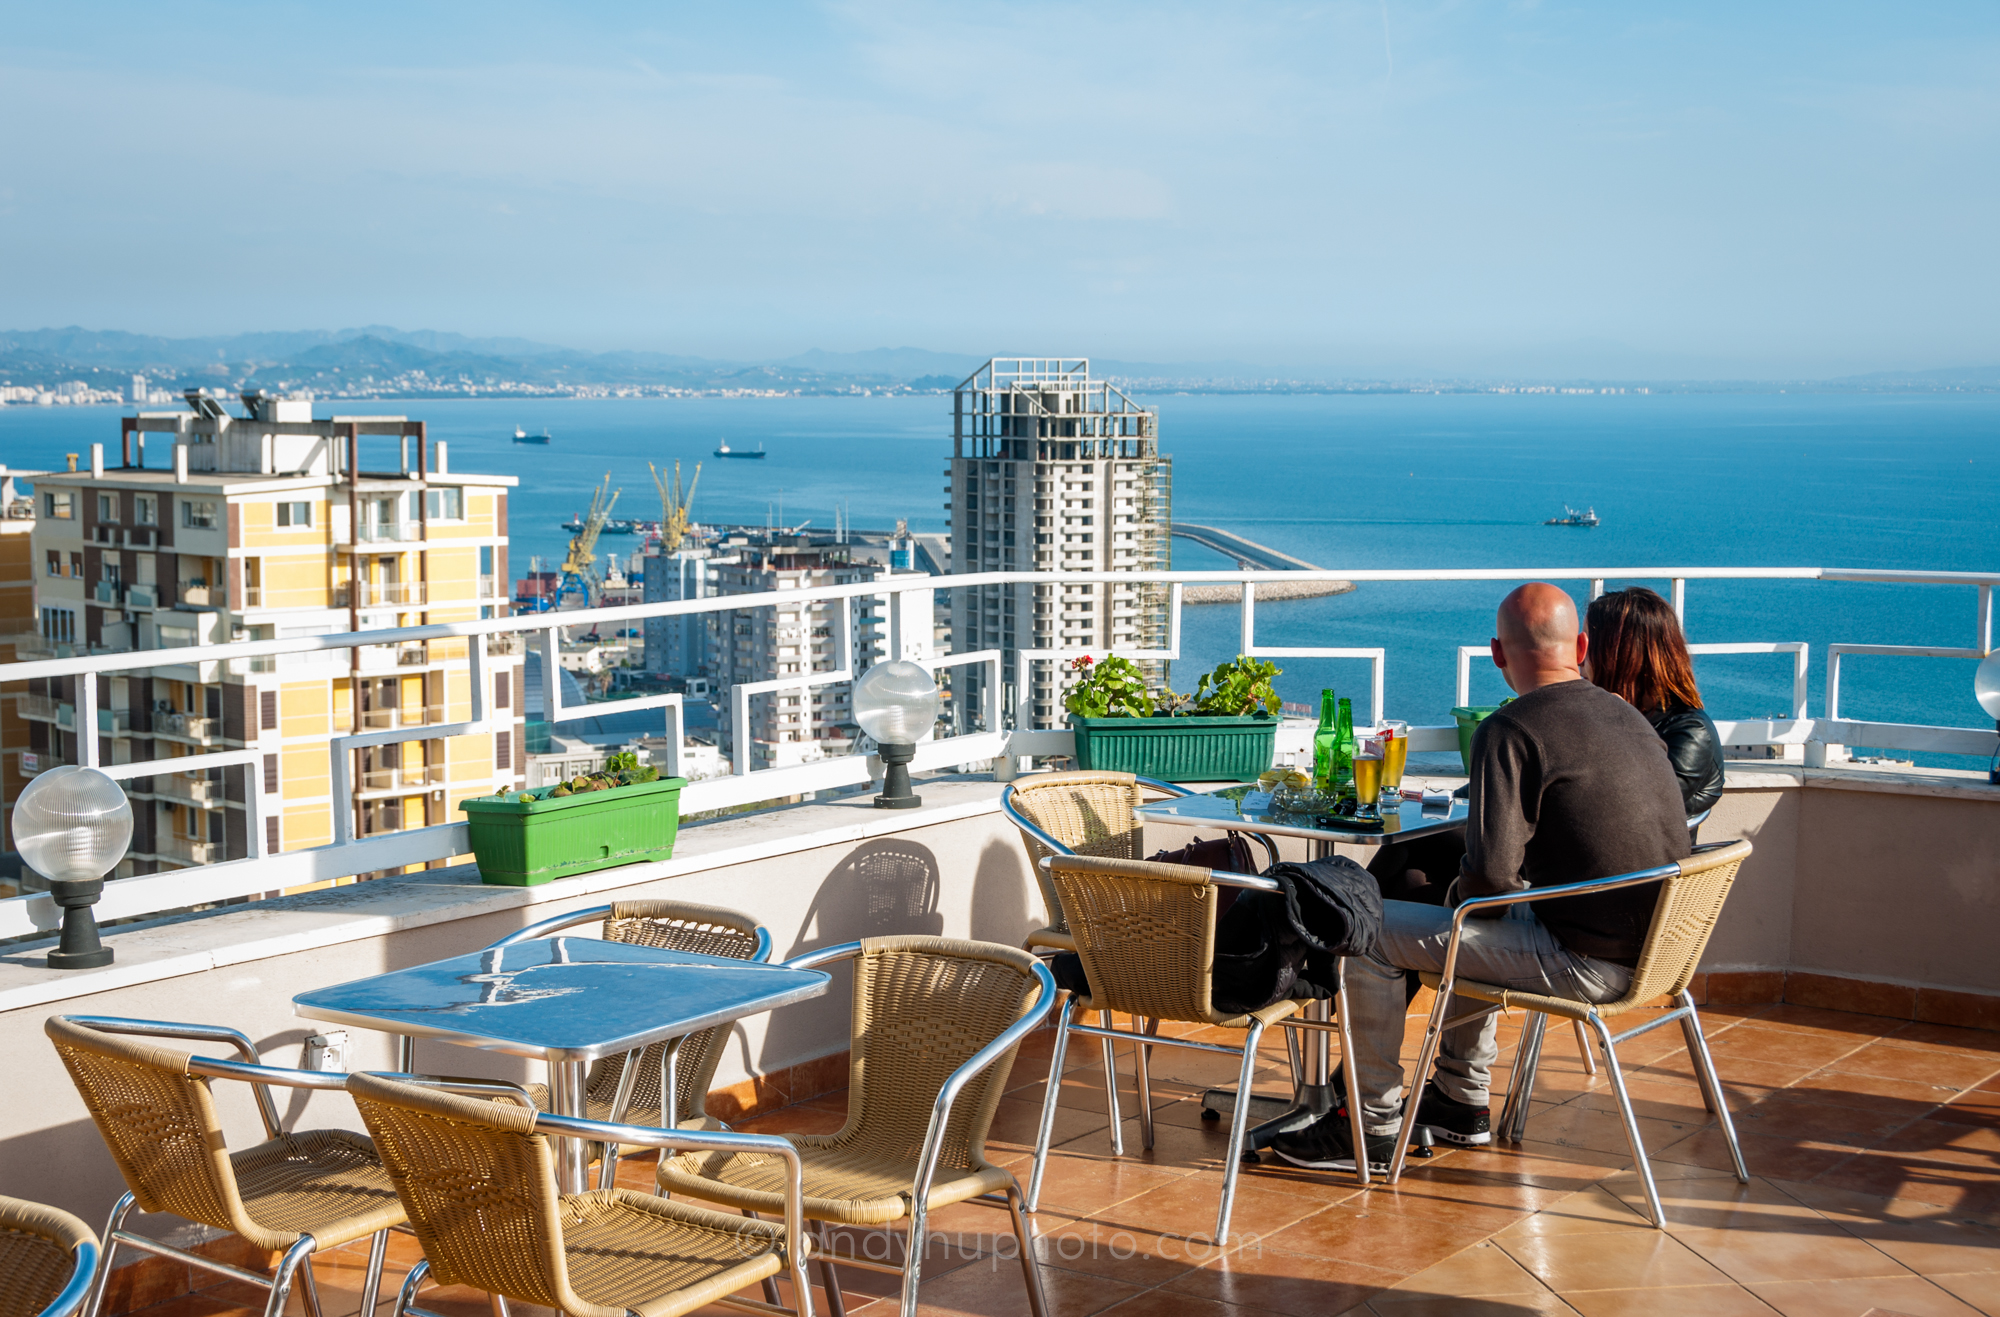 One of many rooftop cafes in Durrës